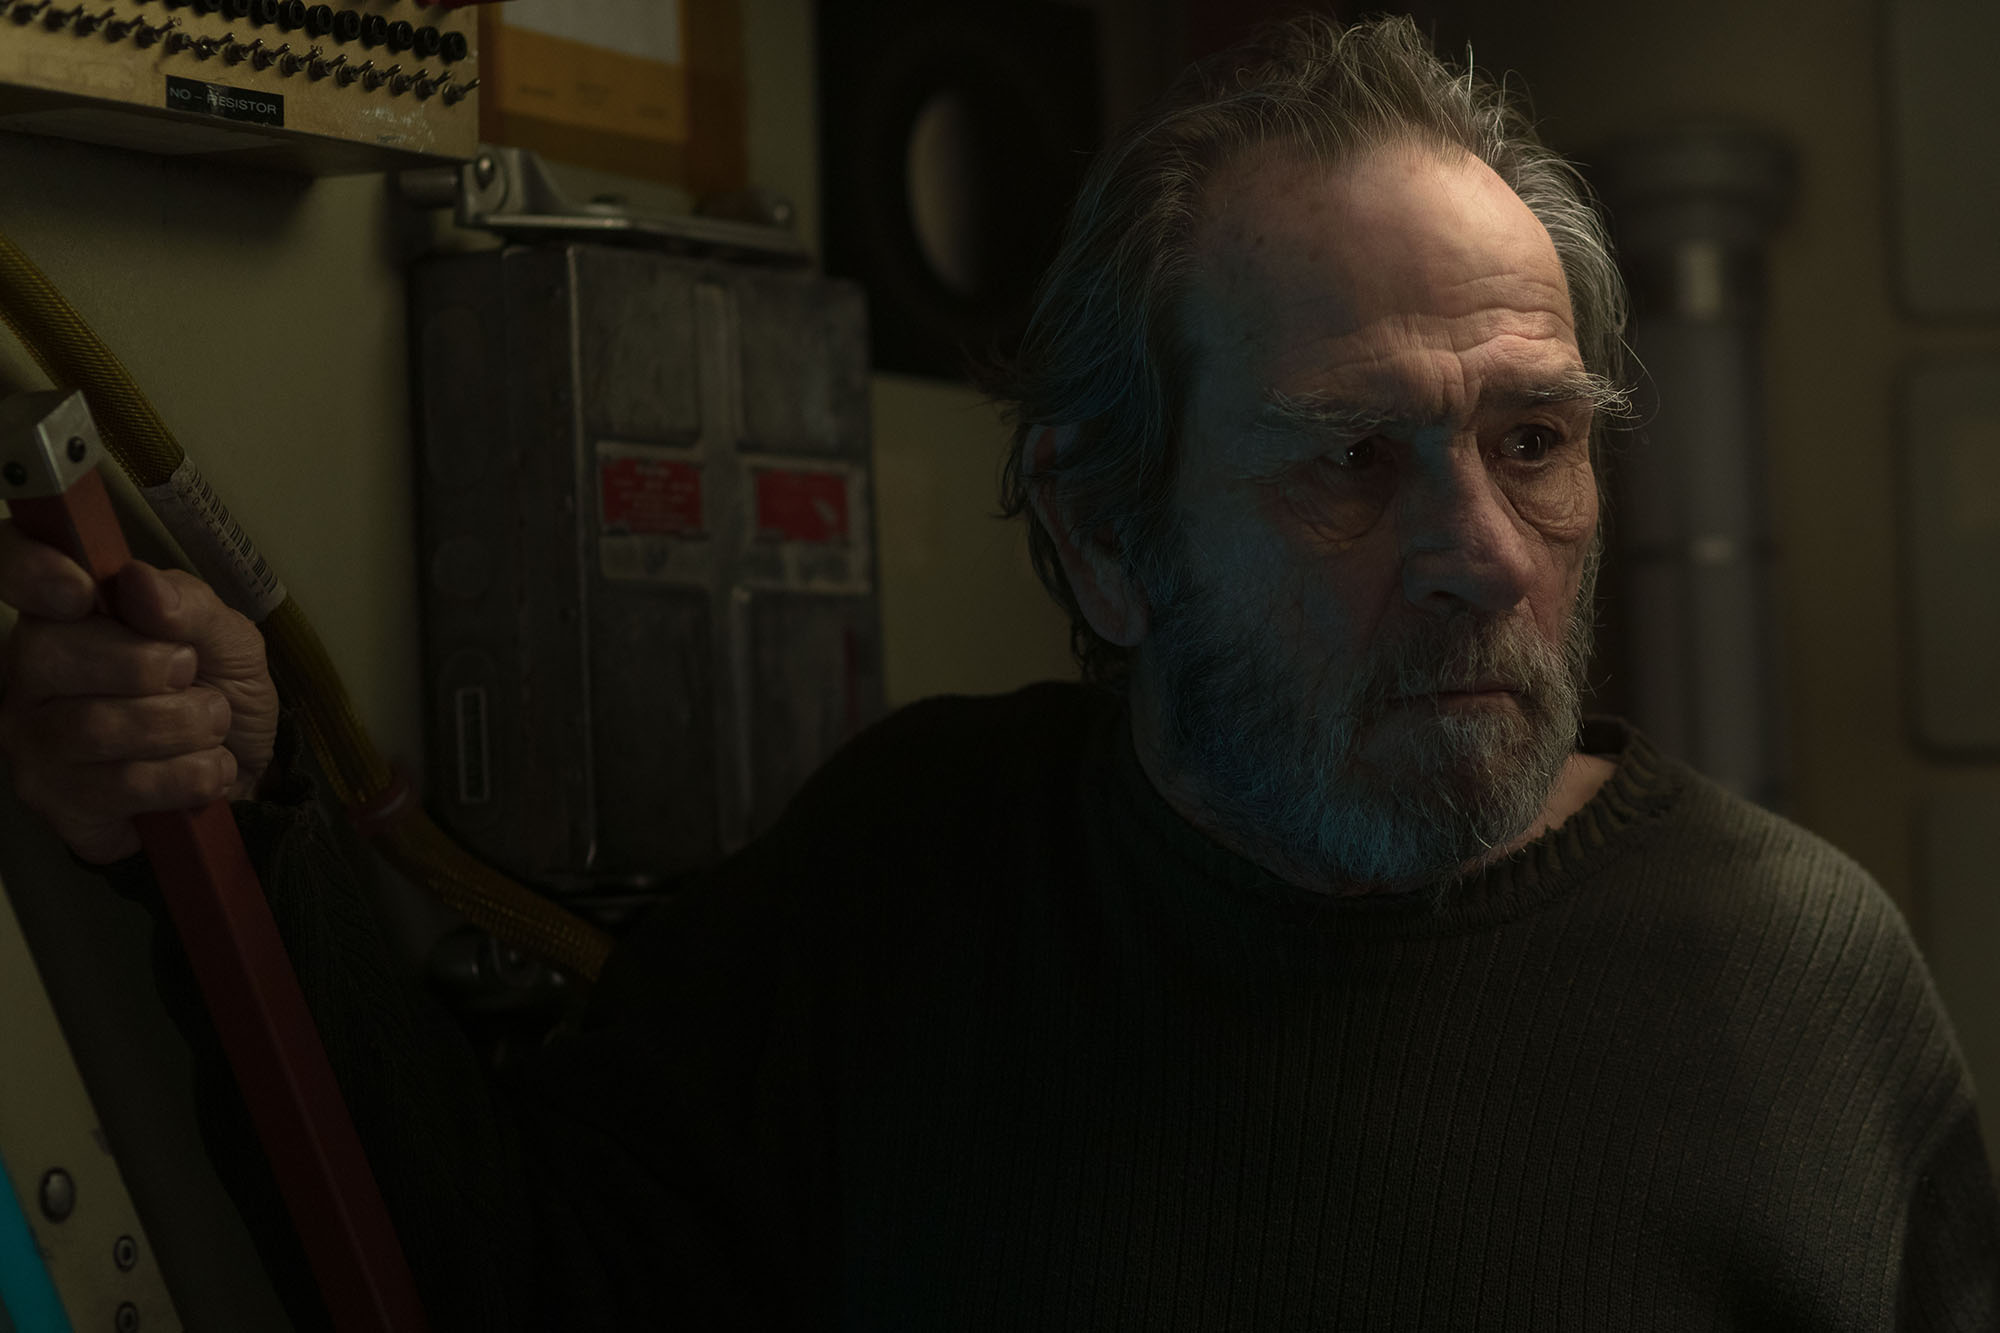 Ad Astra Tommy Lee Jones BLEZT